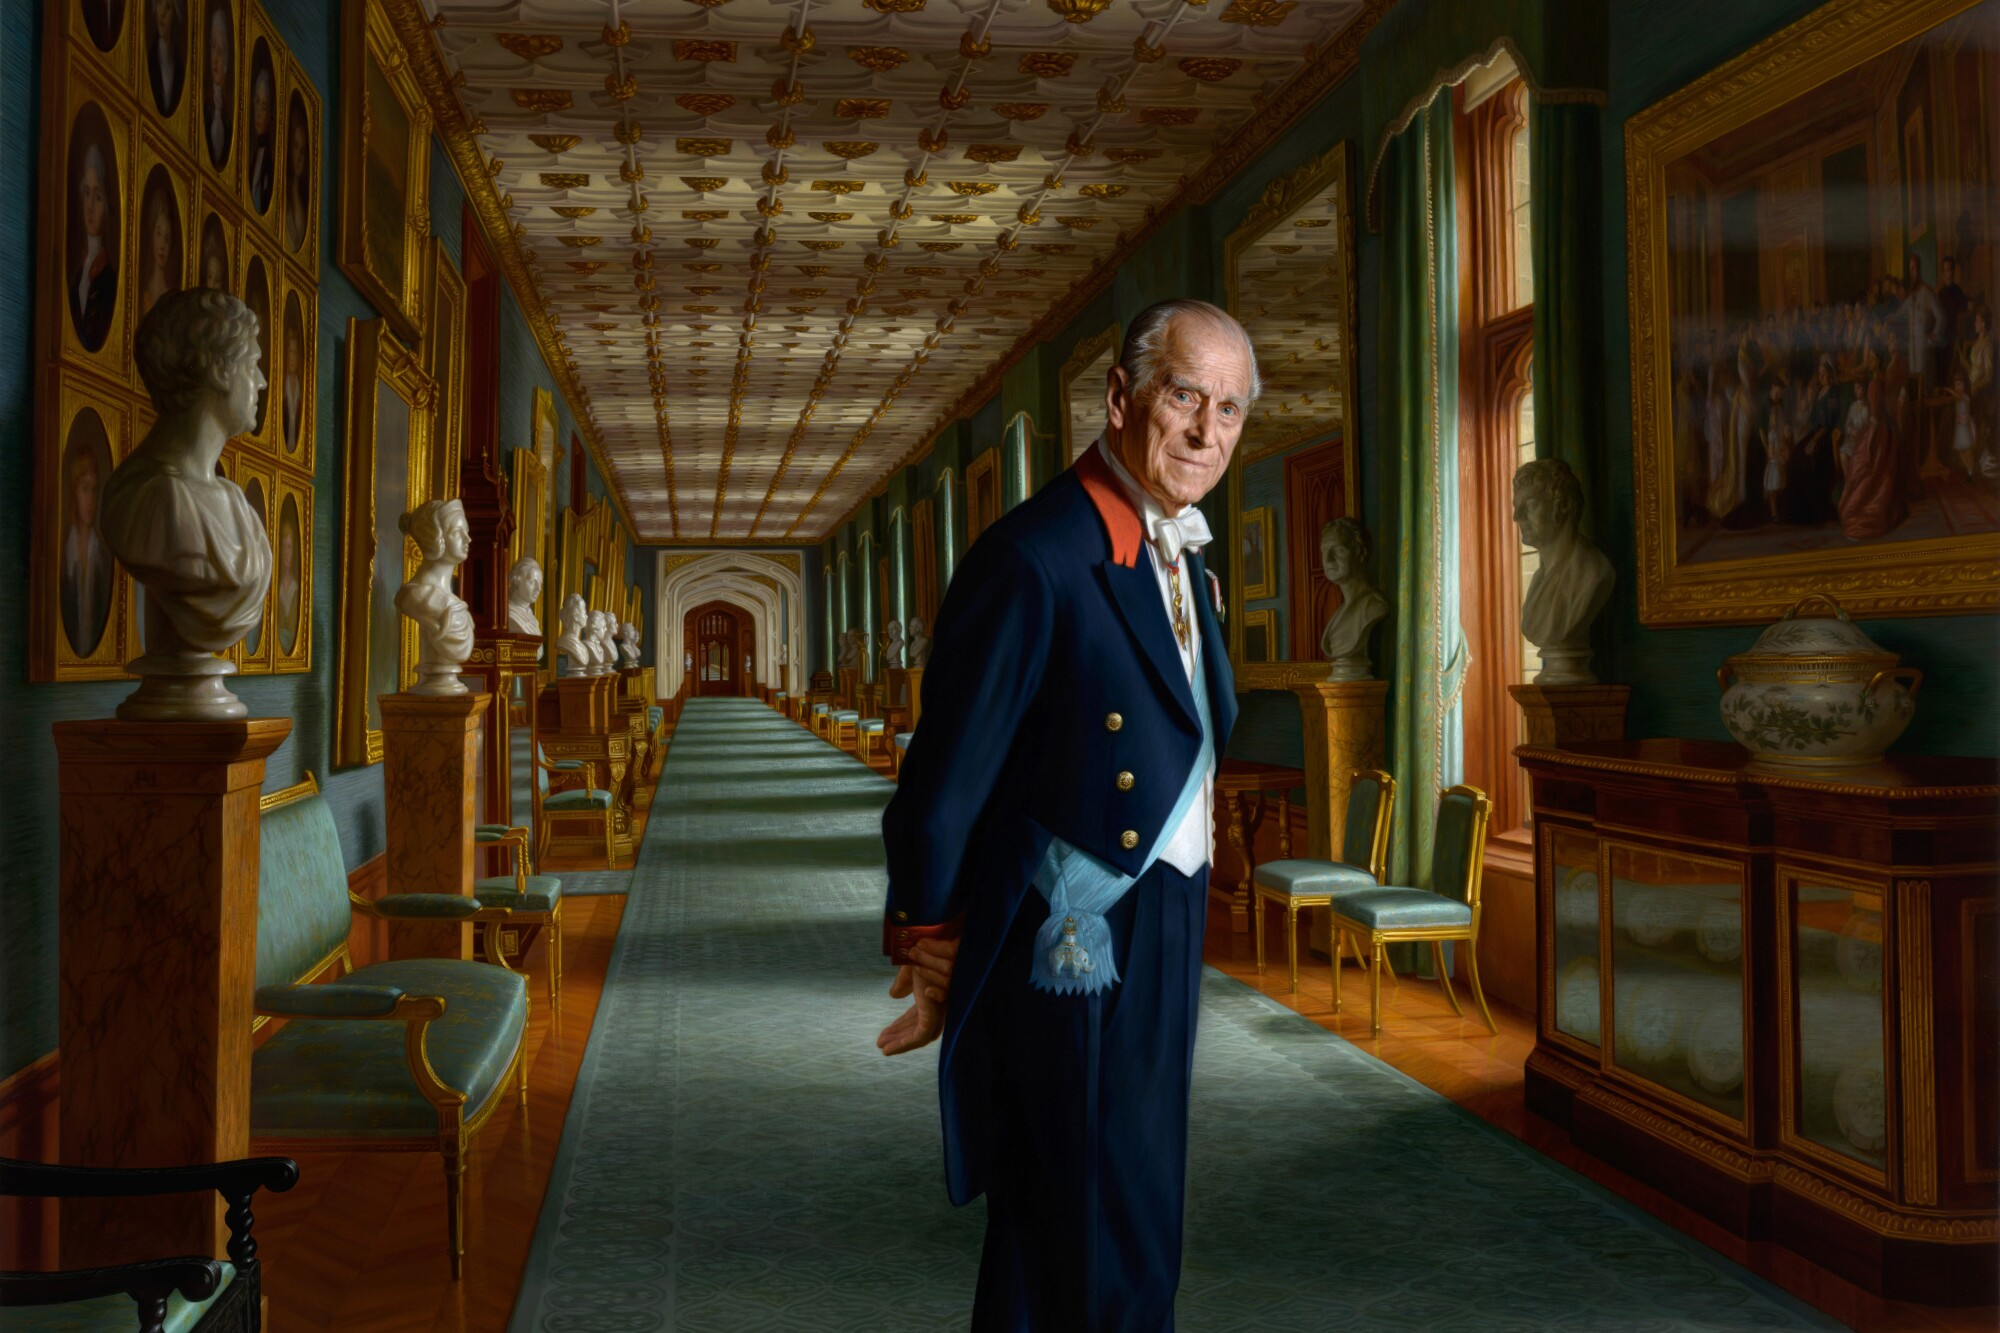 A painting of Prince Philip shows him in a royal sash with hands behind his back.